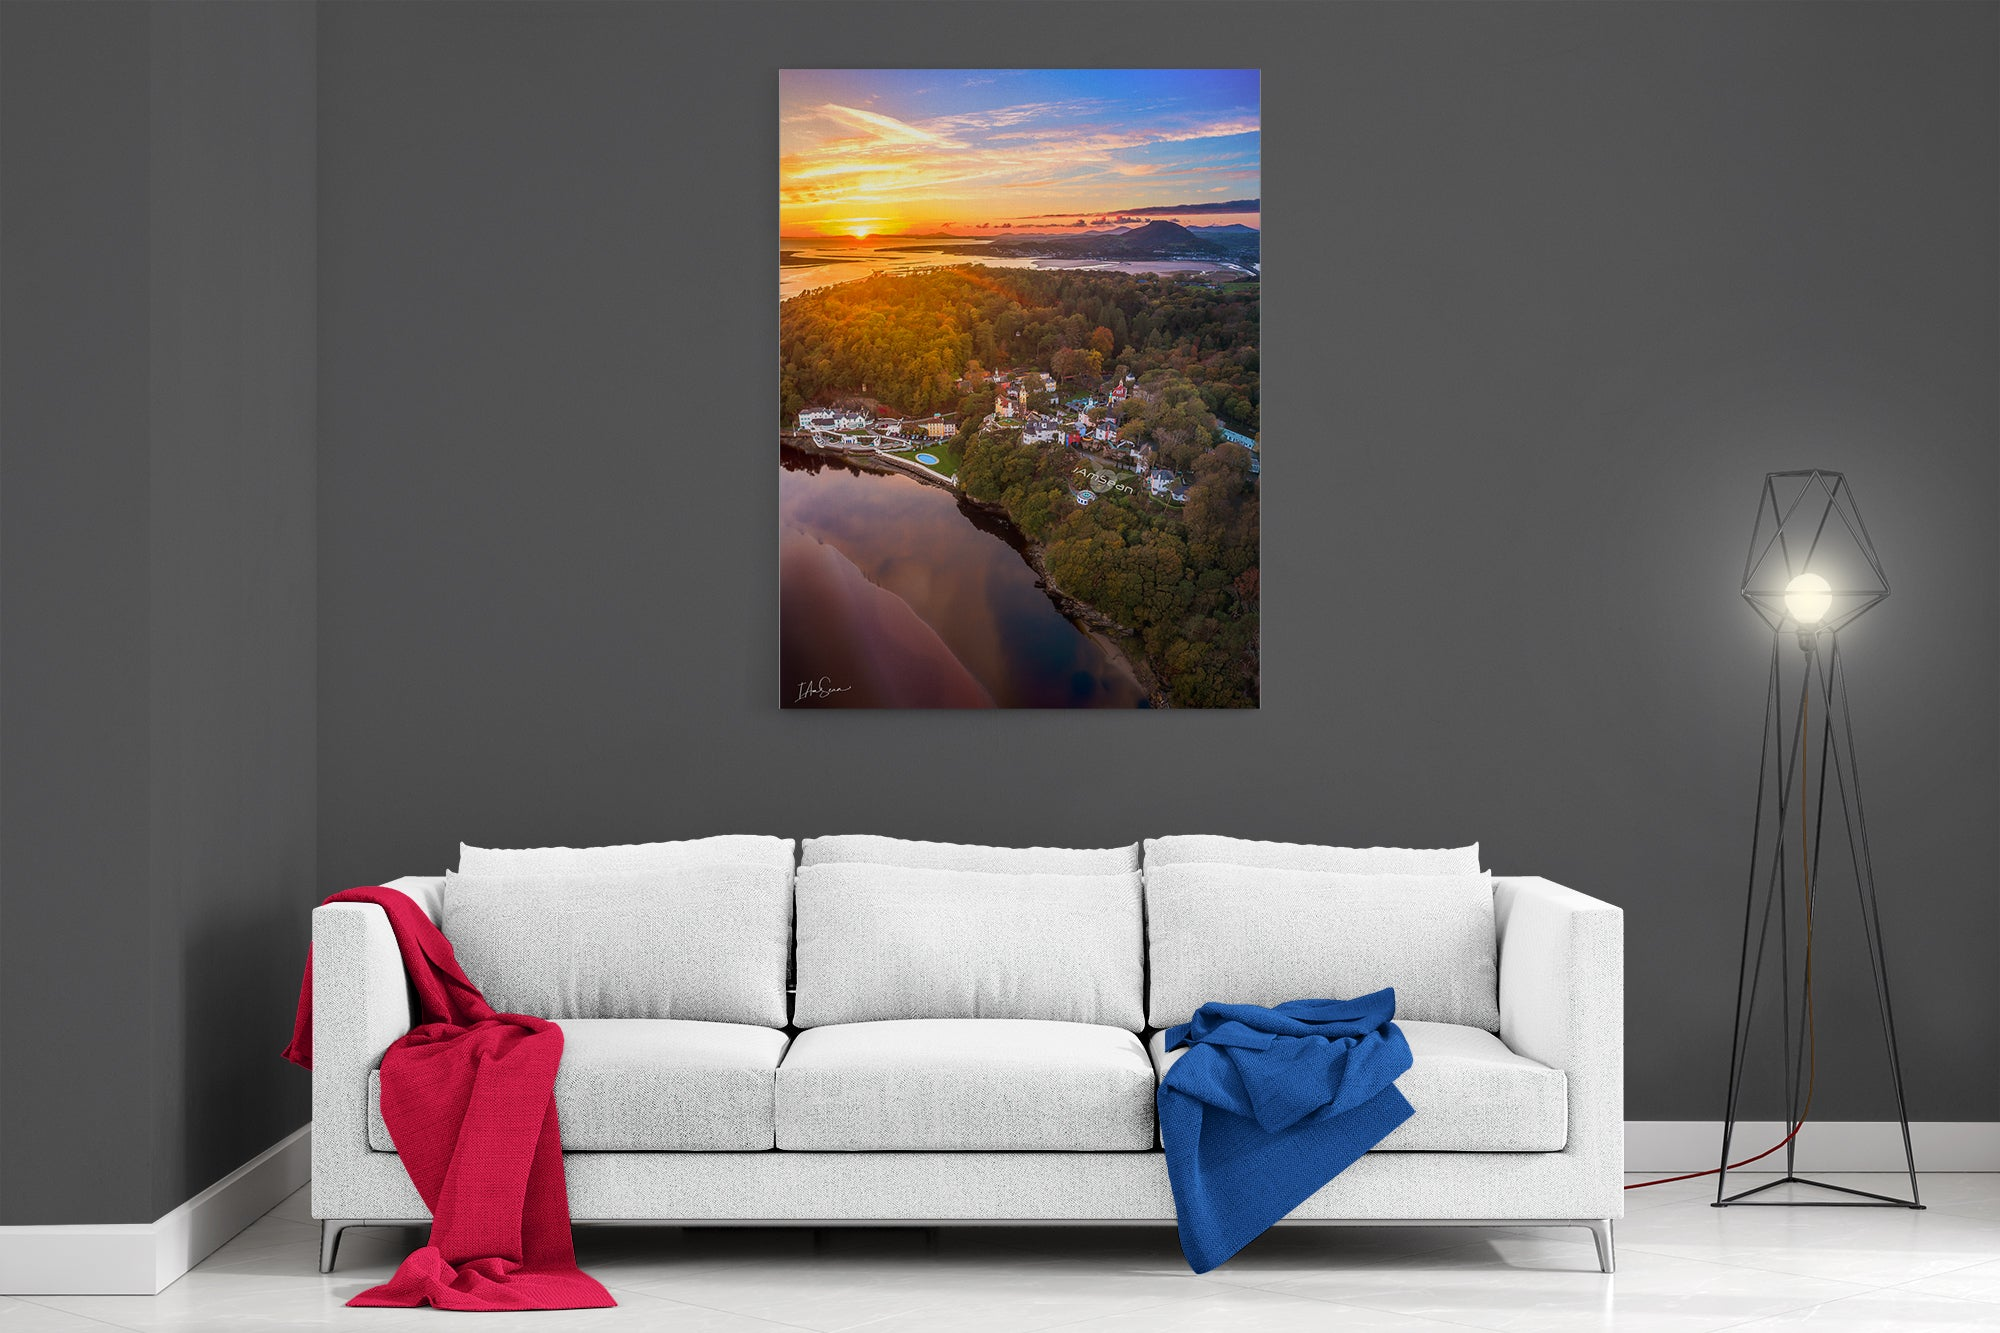 Portmeirion At Sunset - Ready To Hang Canvas